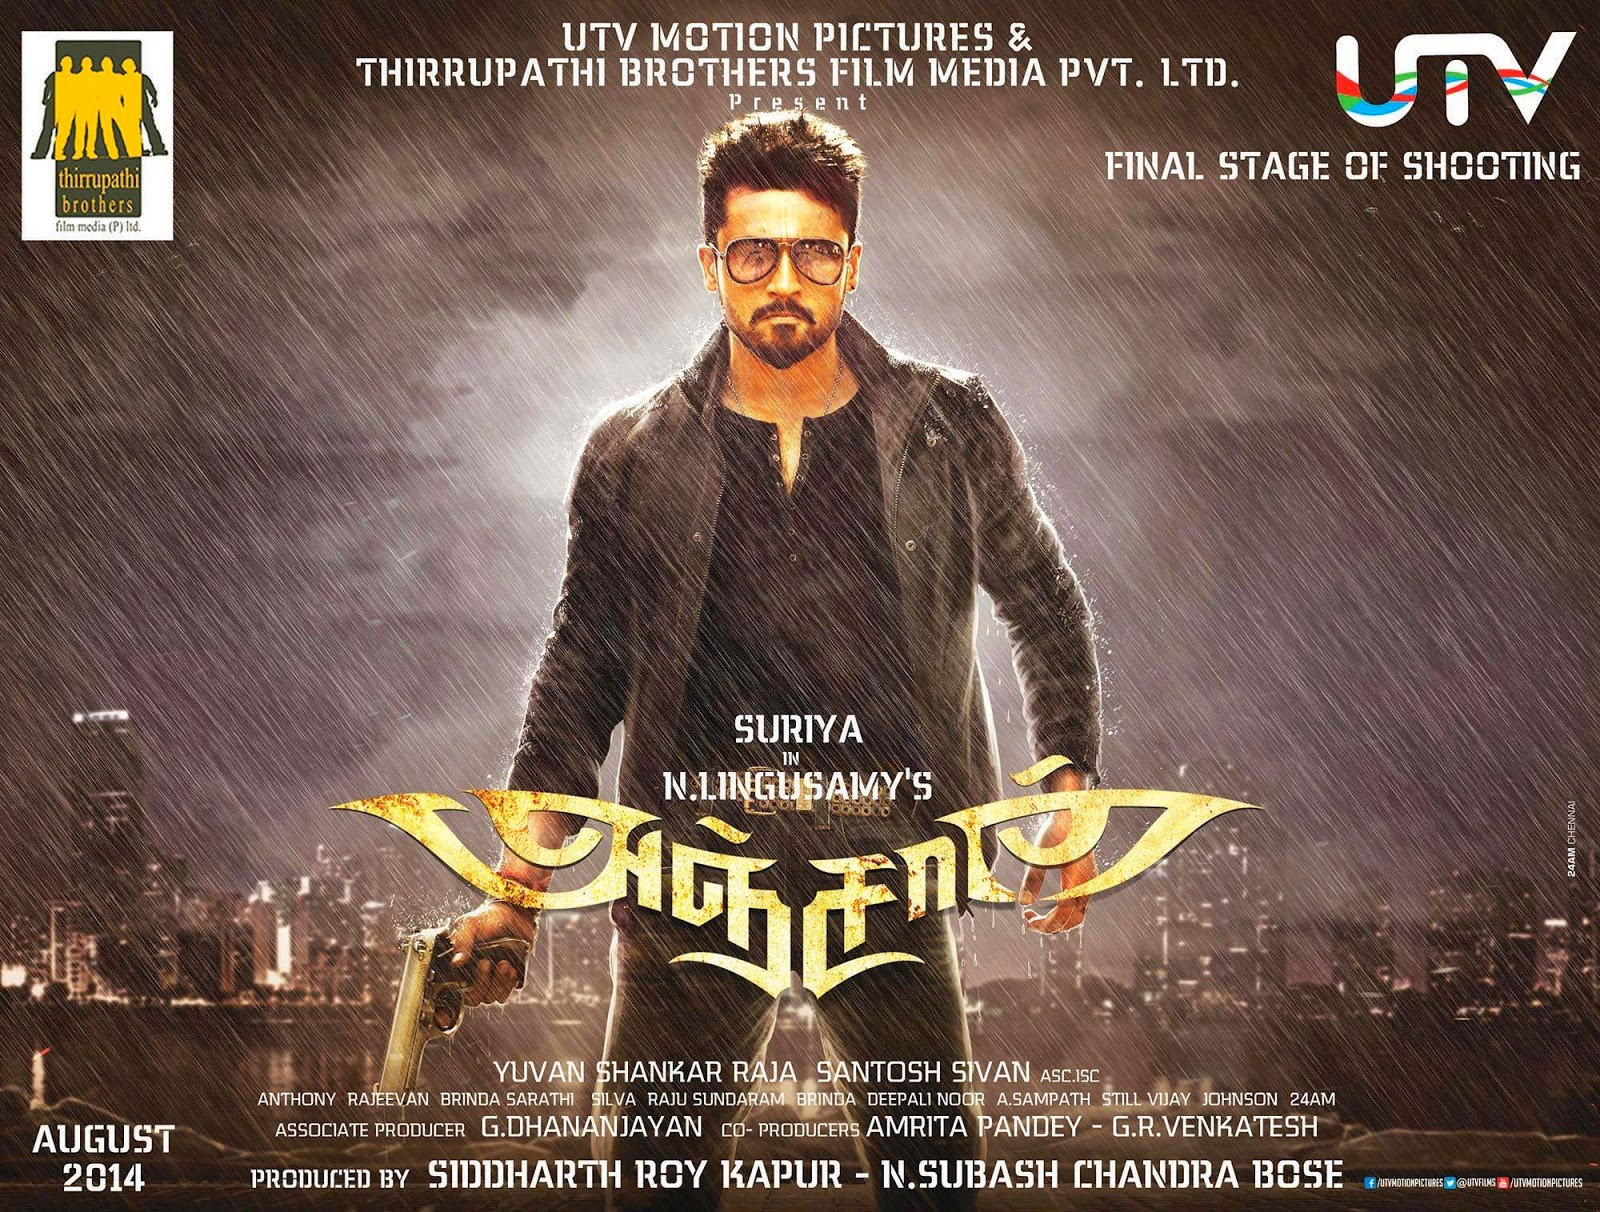 Suriya Sikandar Movie Stills In Hd: Anjaan Working Stills And Latest Wallpapers Hd Posters